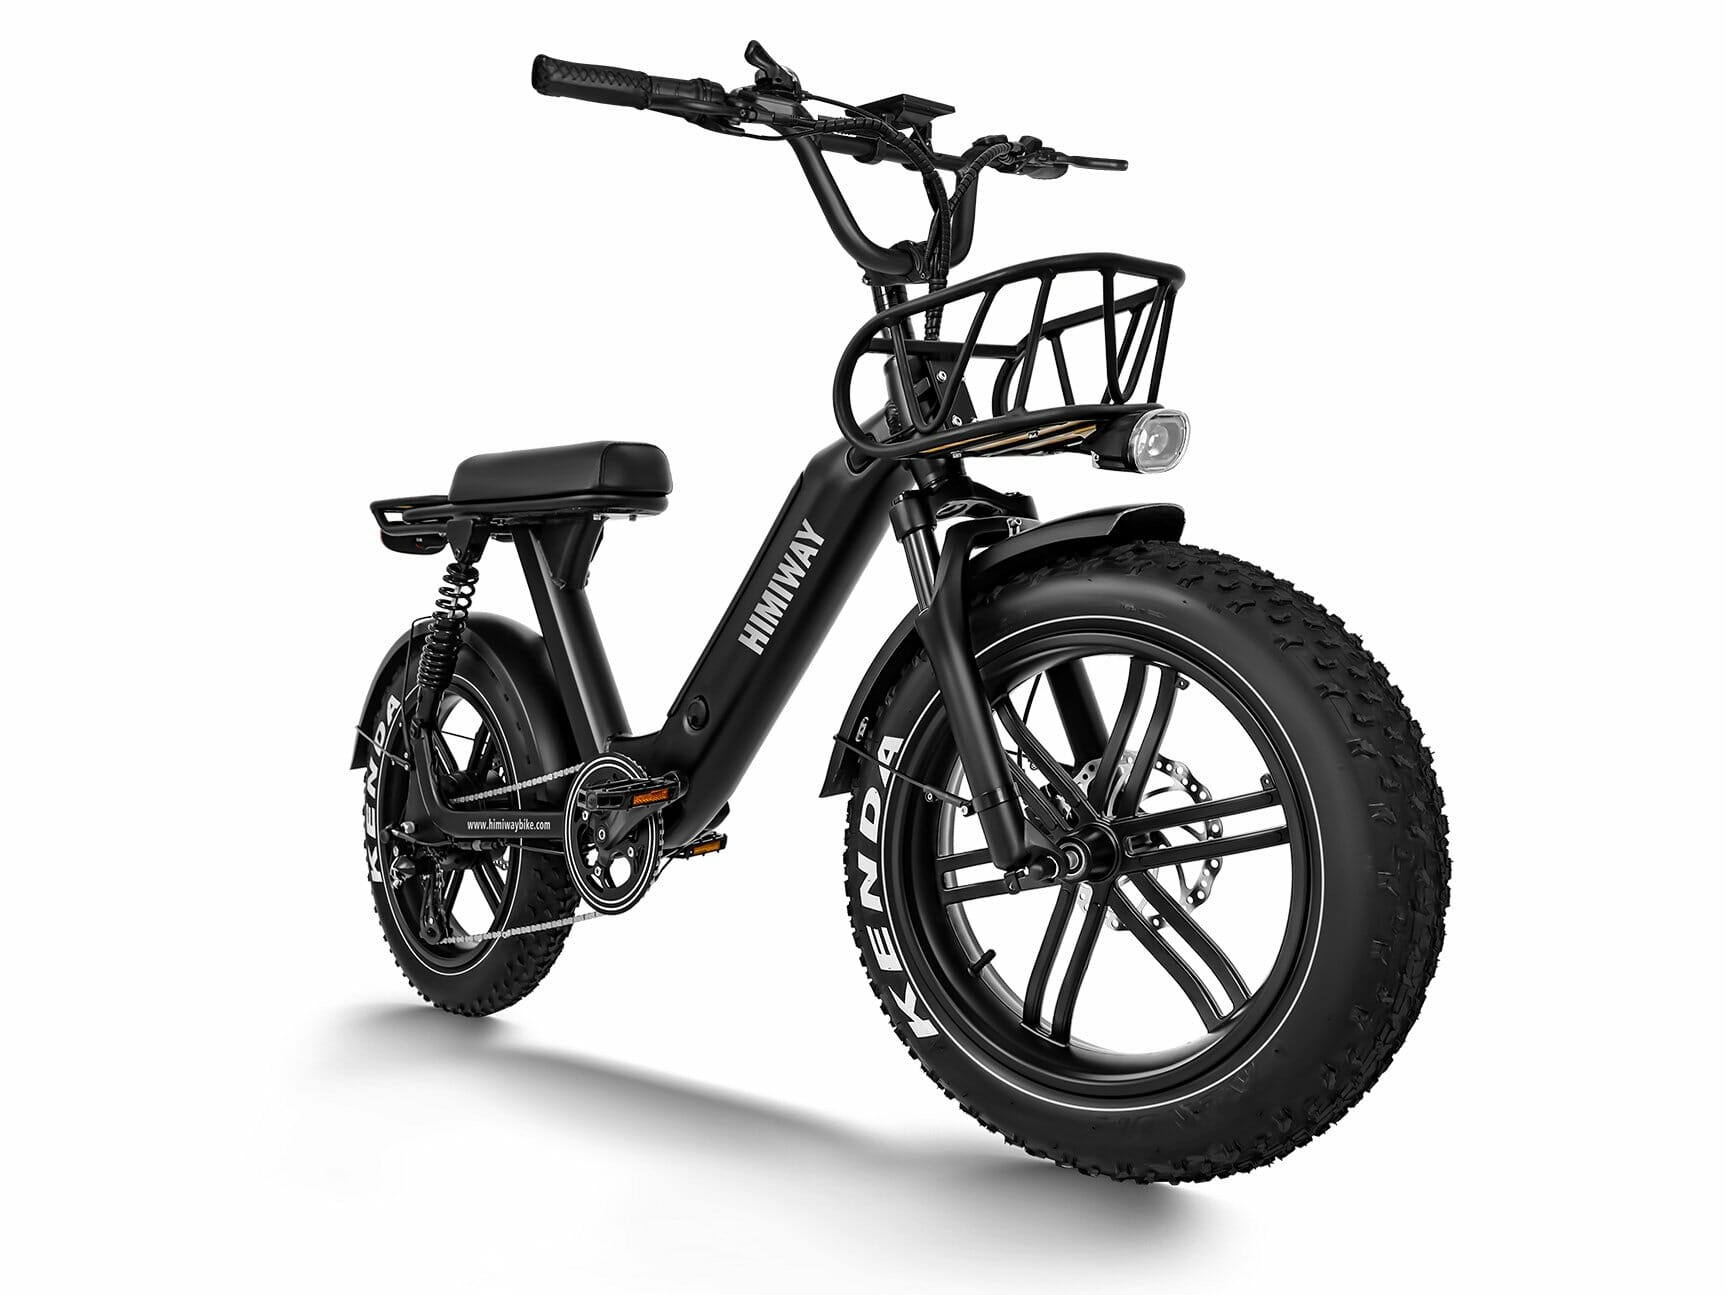 Himiway Escape Review: More moped... or more mountain bike? 20